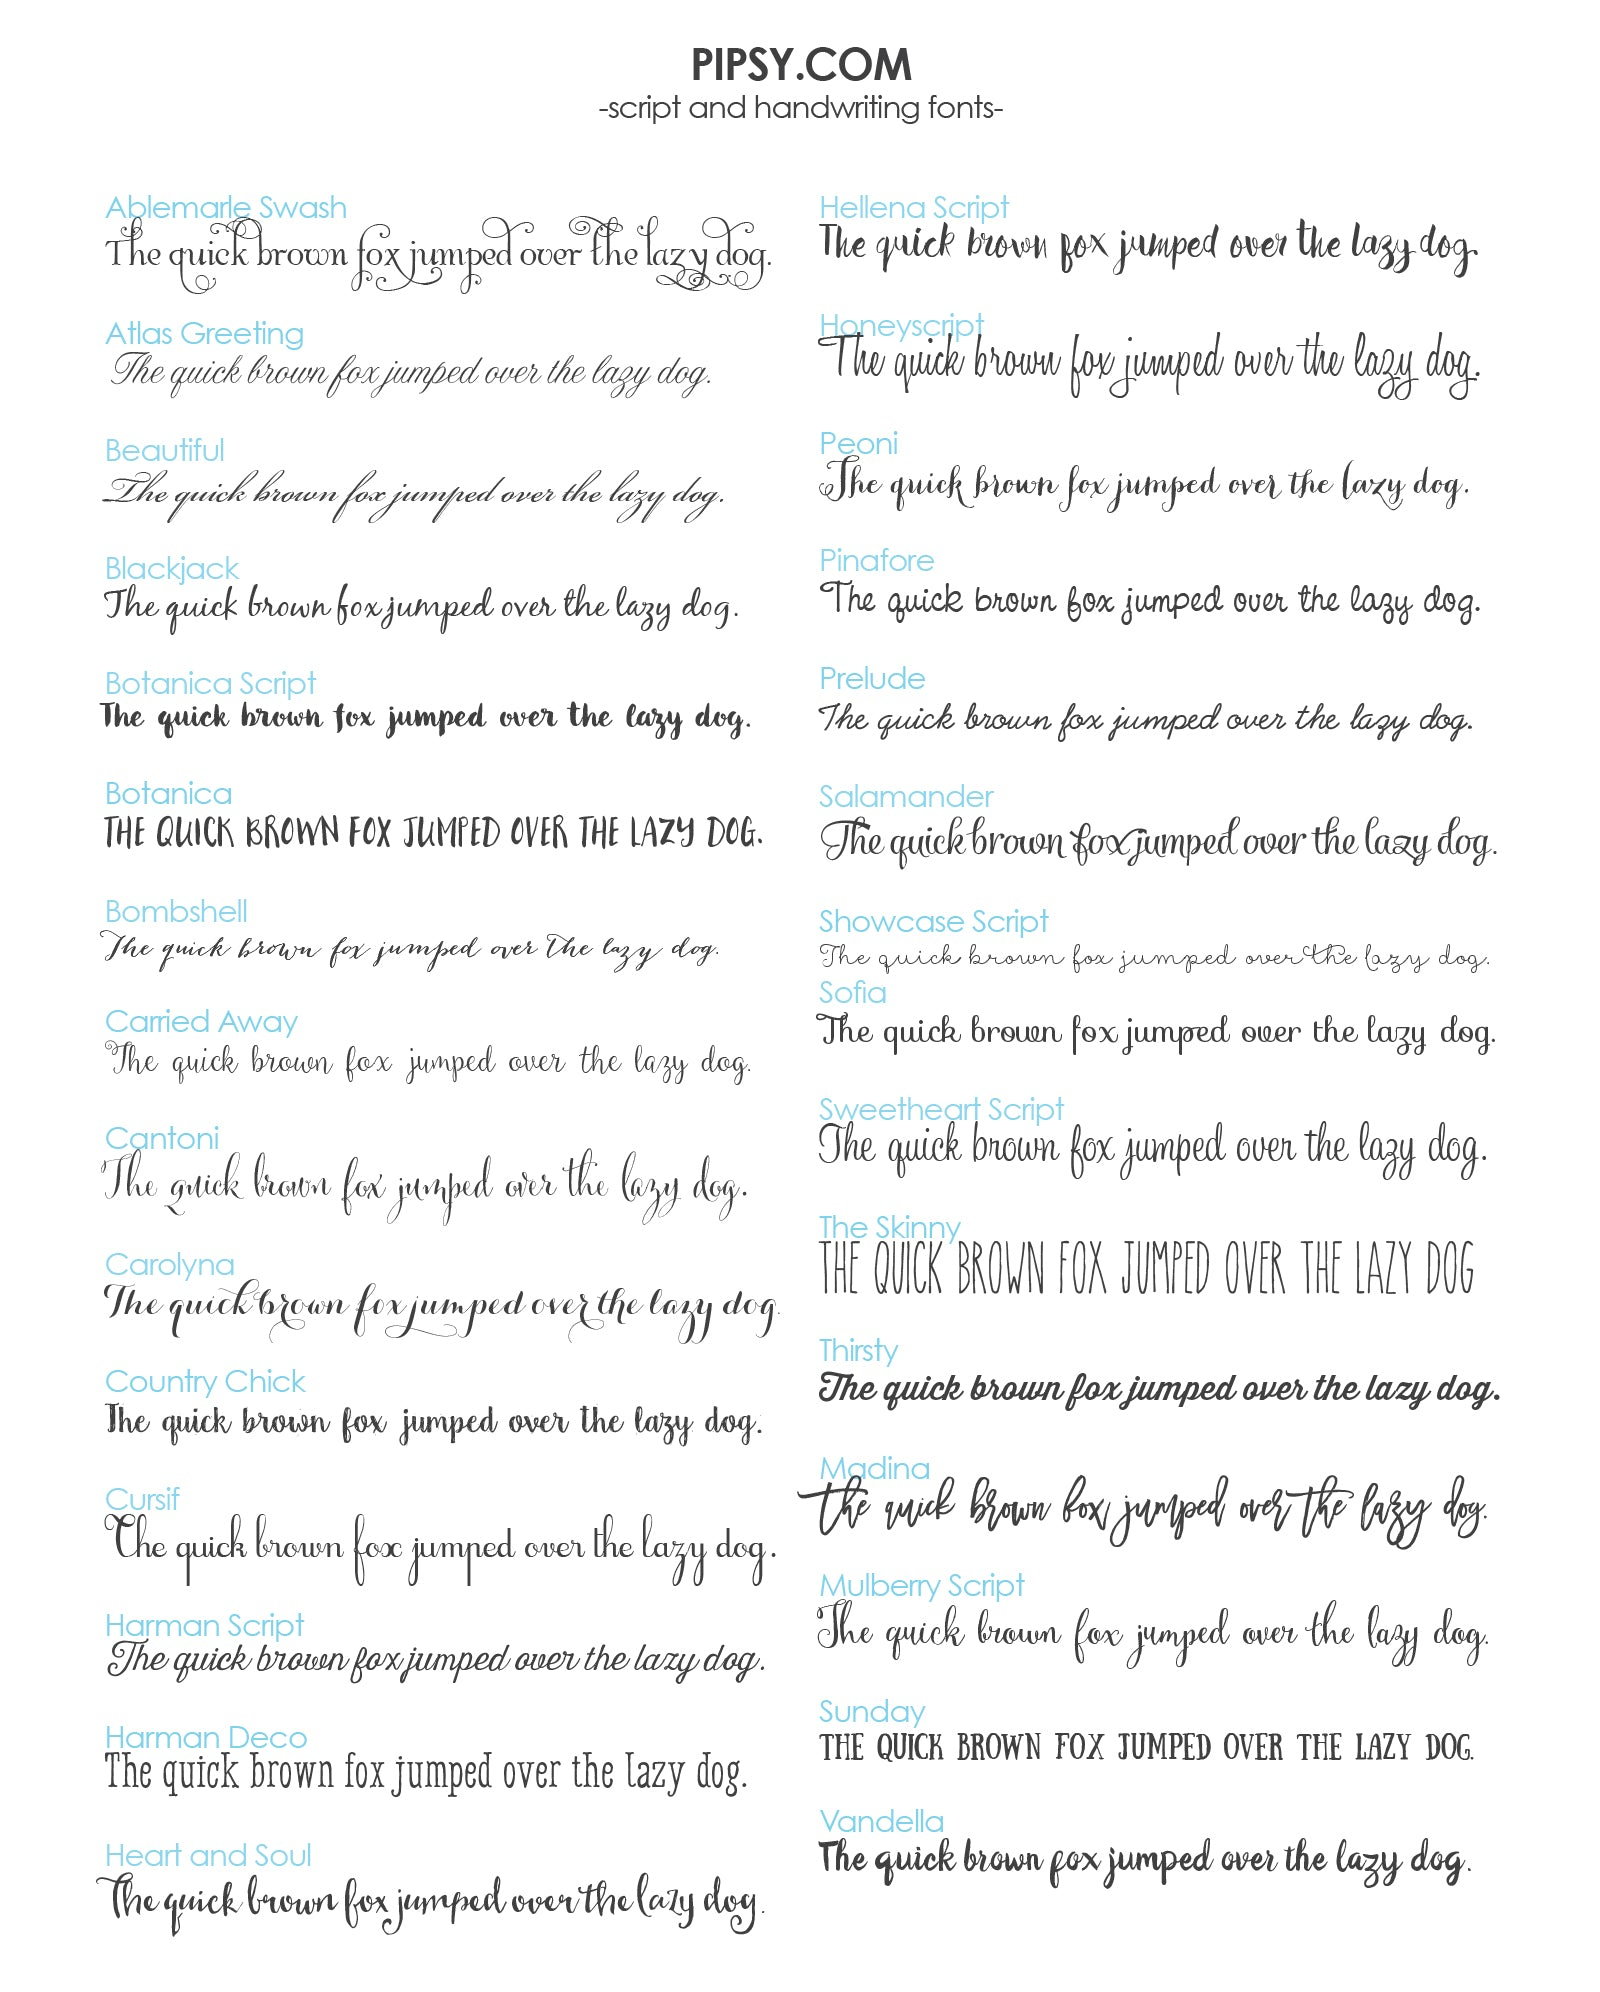 Pipsy Font List - Script and Handwriting